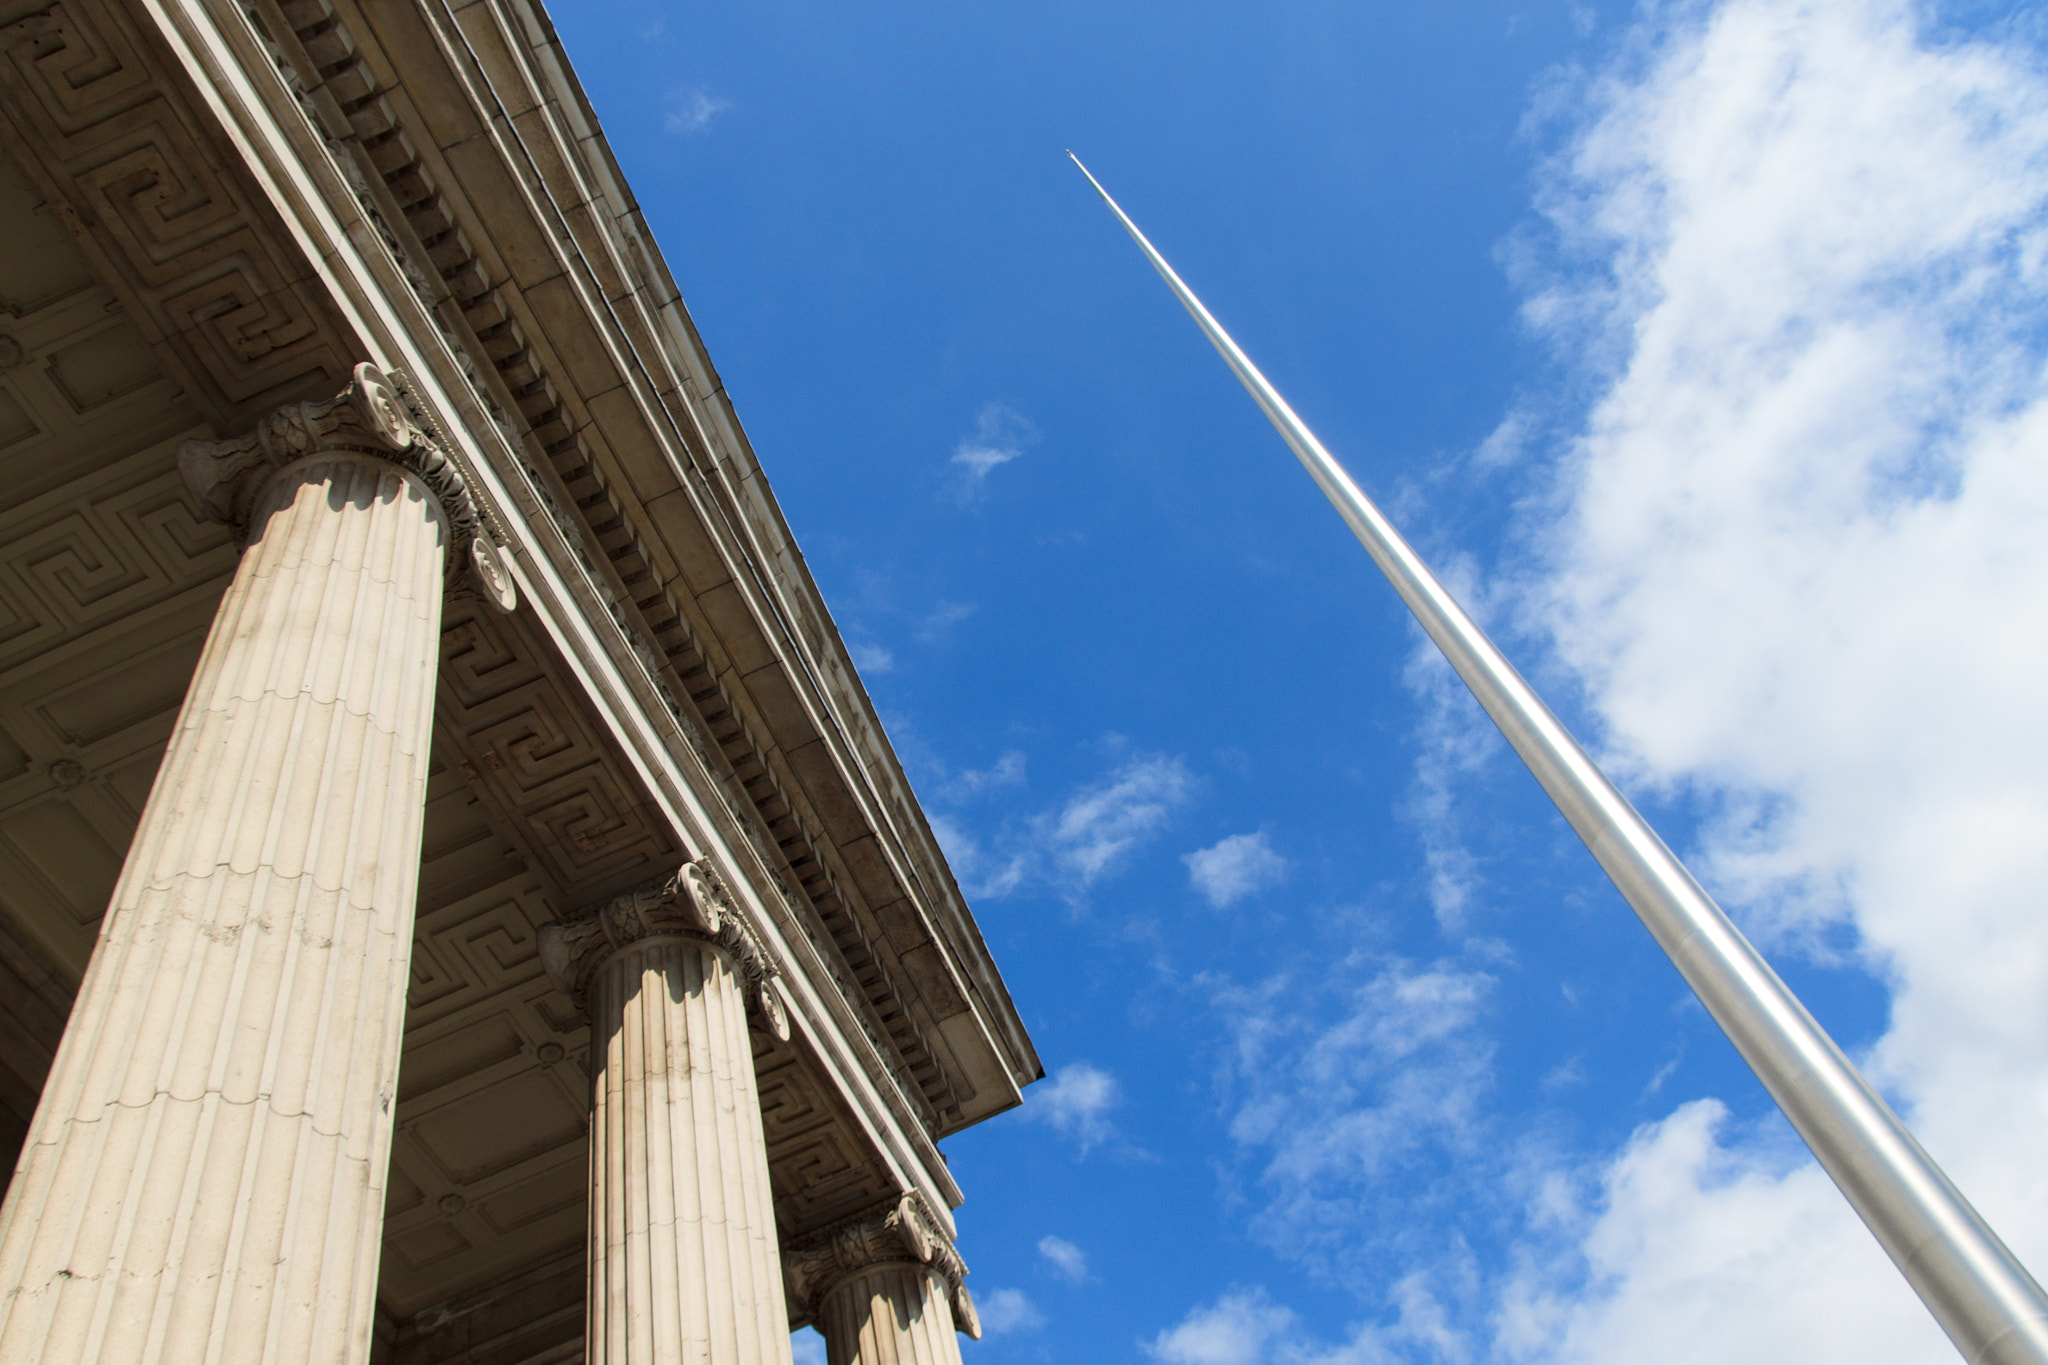 Photograph Spire of Dublin & Post Office by William Kong on 500px